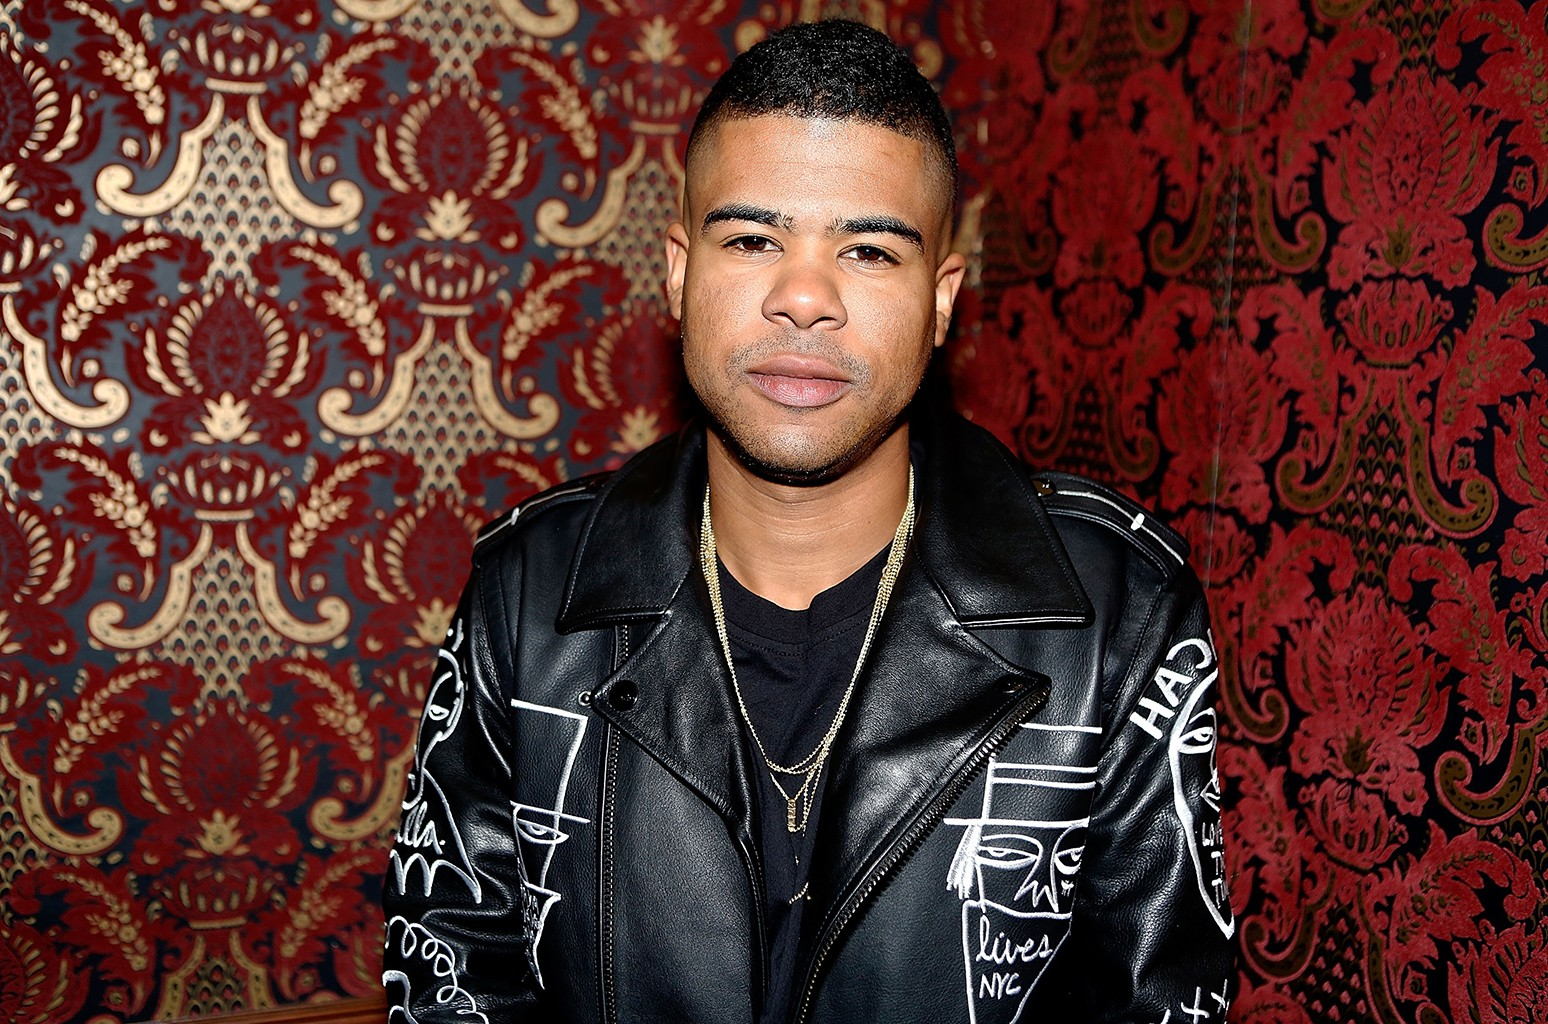 iLoveMakonnen attends the record release party for 'Drink More Water 6' at No Vacancy on March 22, 2016 in Los Angeles.